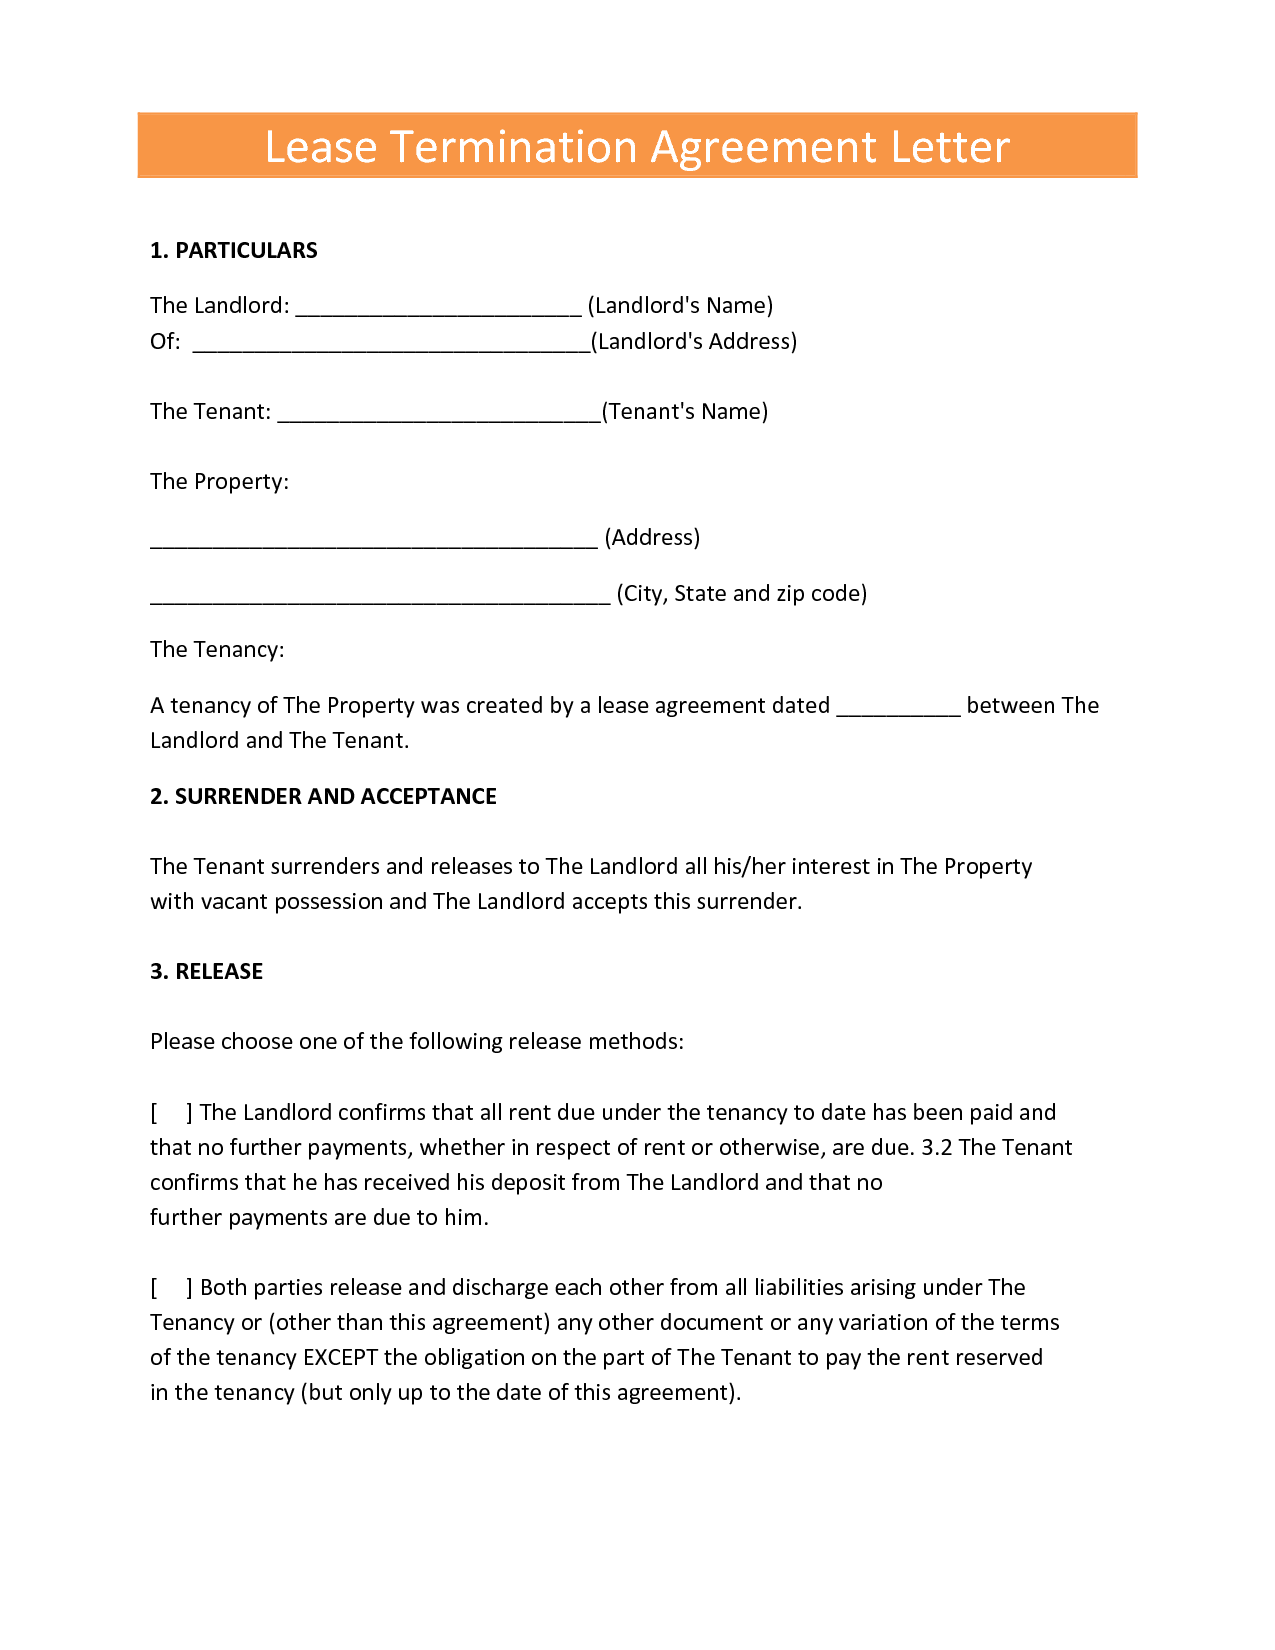 Lease Termination Agreement Letter By Elfir61807 Being A